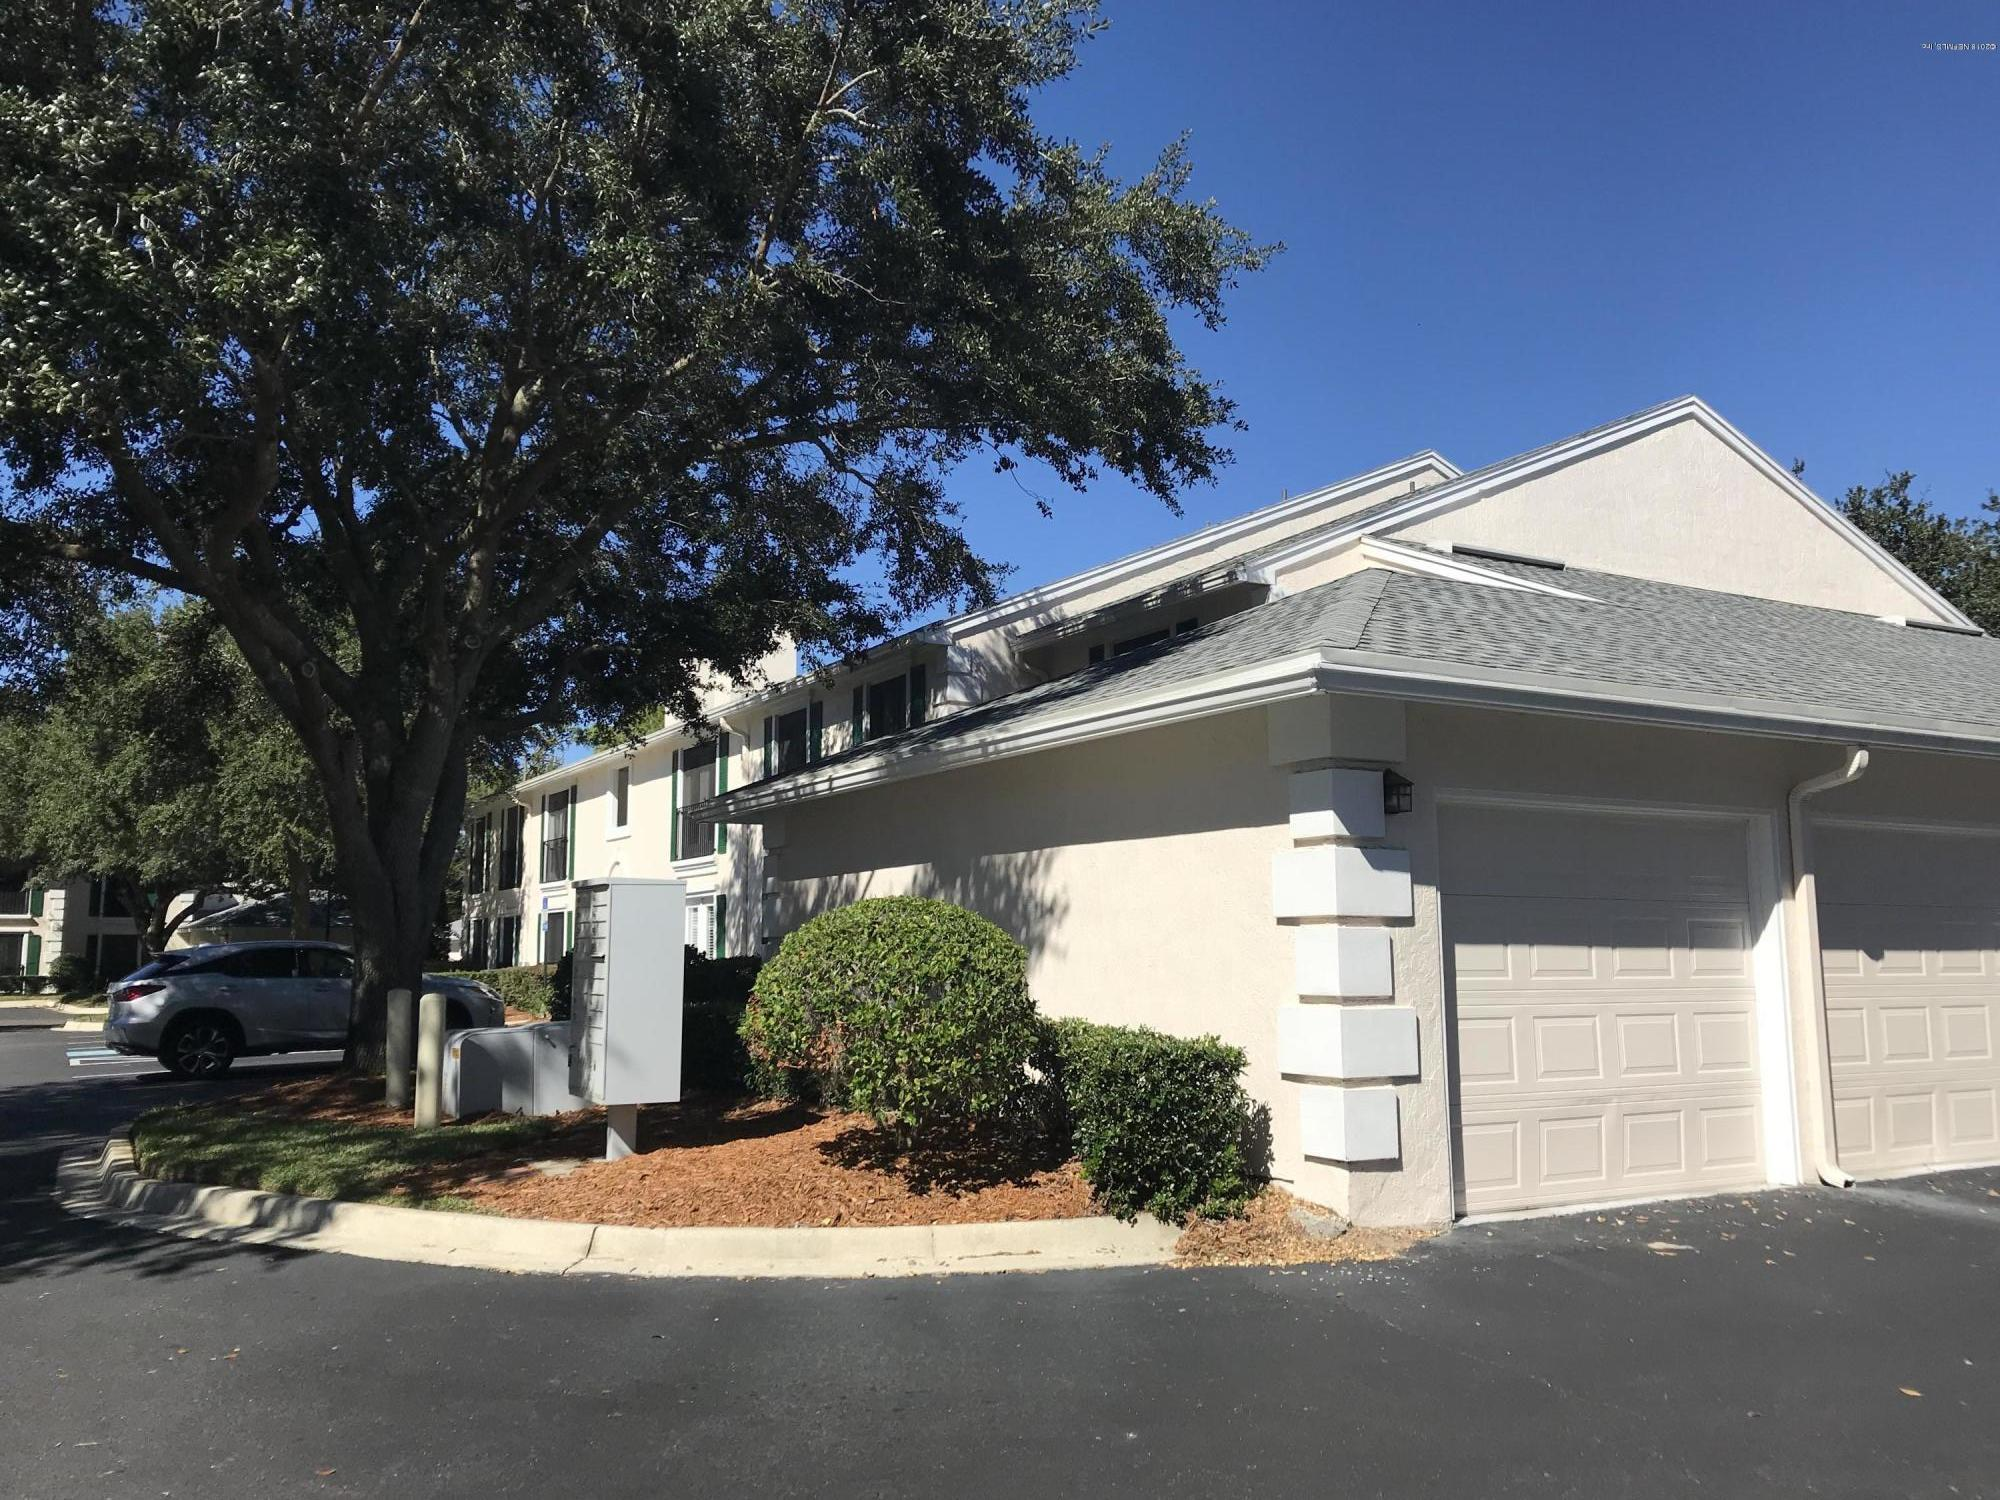 13715 RICHMOND PARK, JACKSONVILLE, FLORIDA 32224, 3 Bedrooms Bedrooms, ,2 BathroomsBathrooms,Residential - condos/townhomes,For sale,RICHMOND PARK,964812